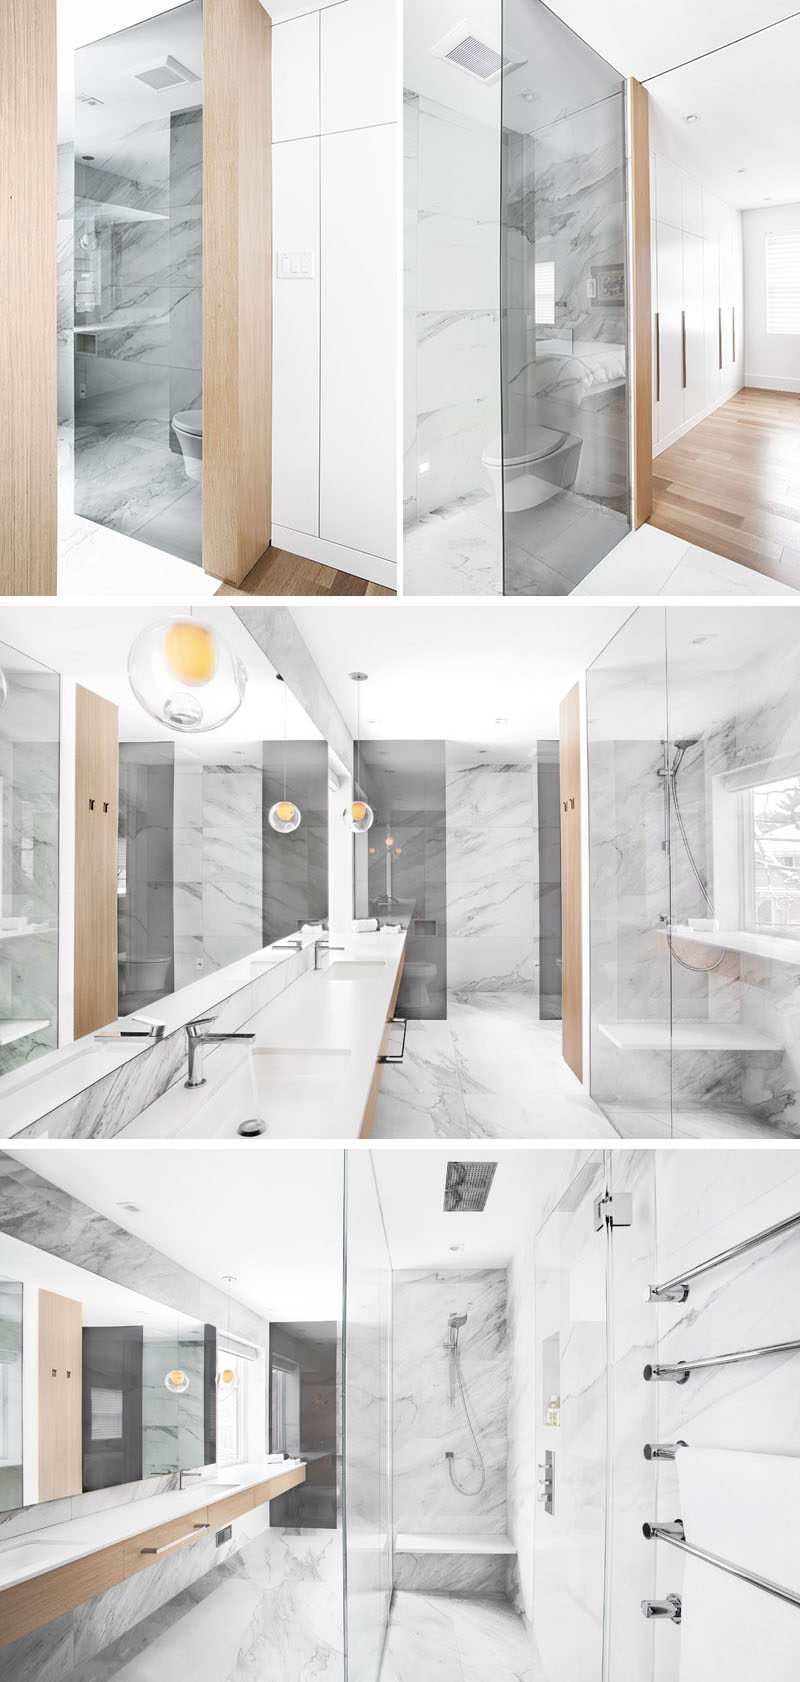 This new and updated master bathroom is a dramatic change from the previous bathroom. Located off to the side of the master, the bathroom features a walk-in shower, a partitioned toilet area and plenty of room.